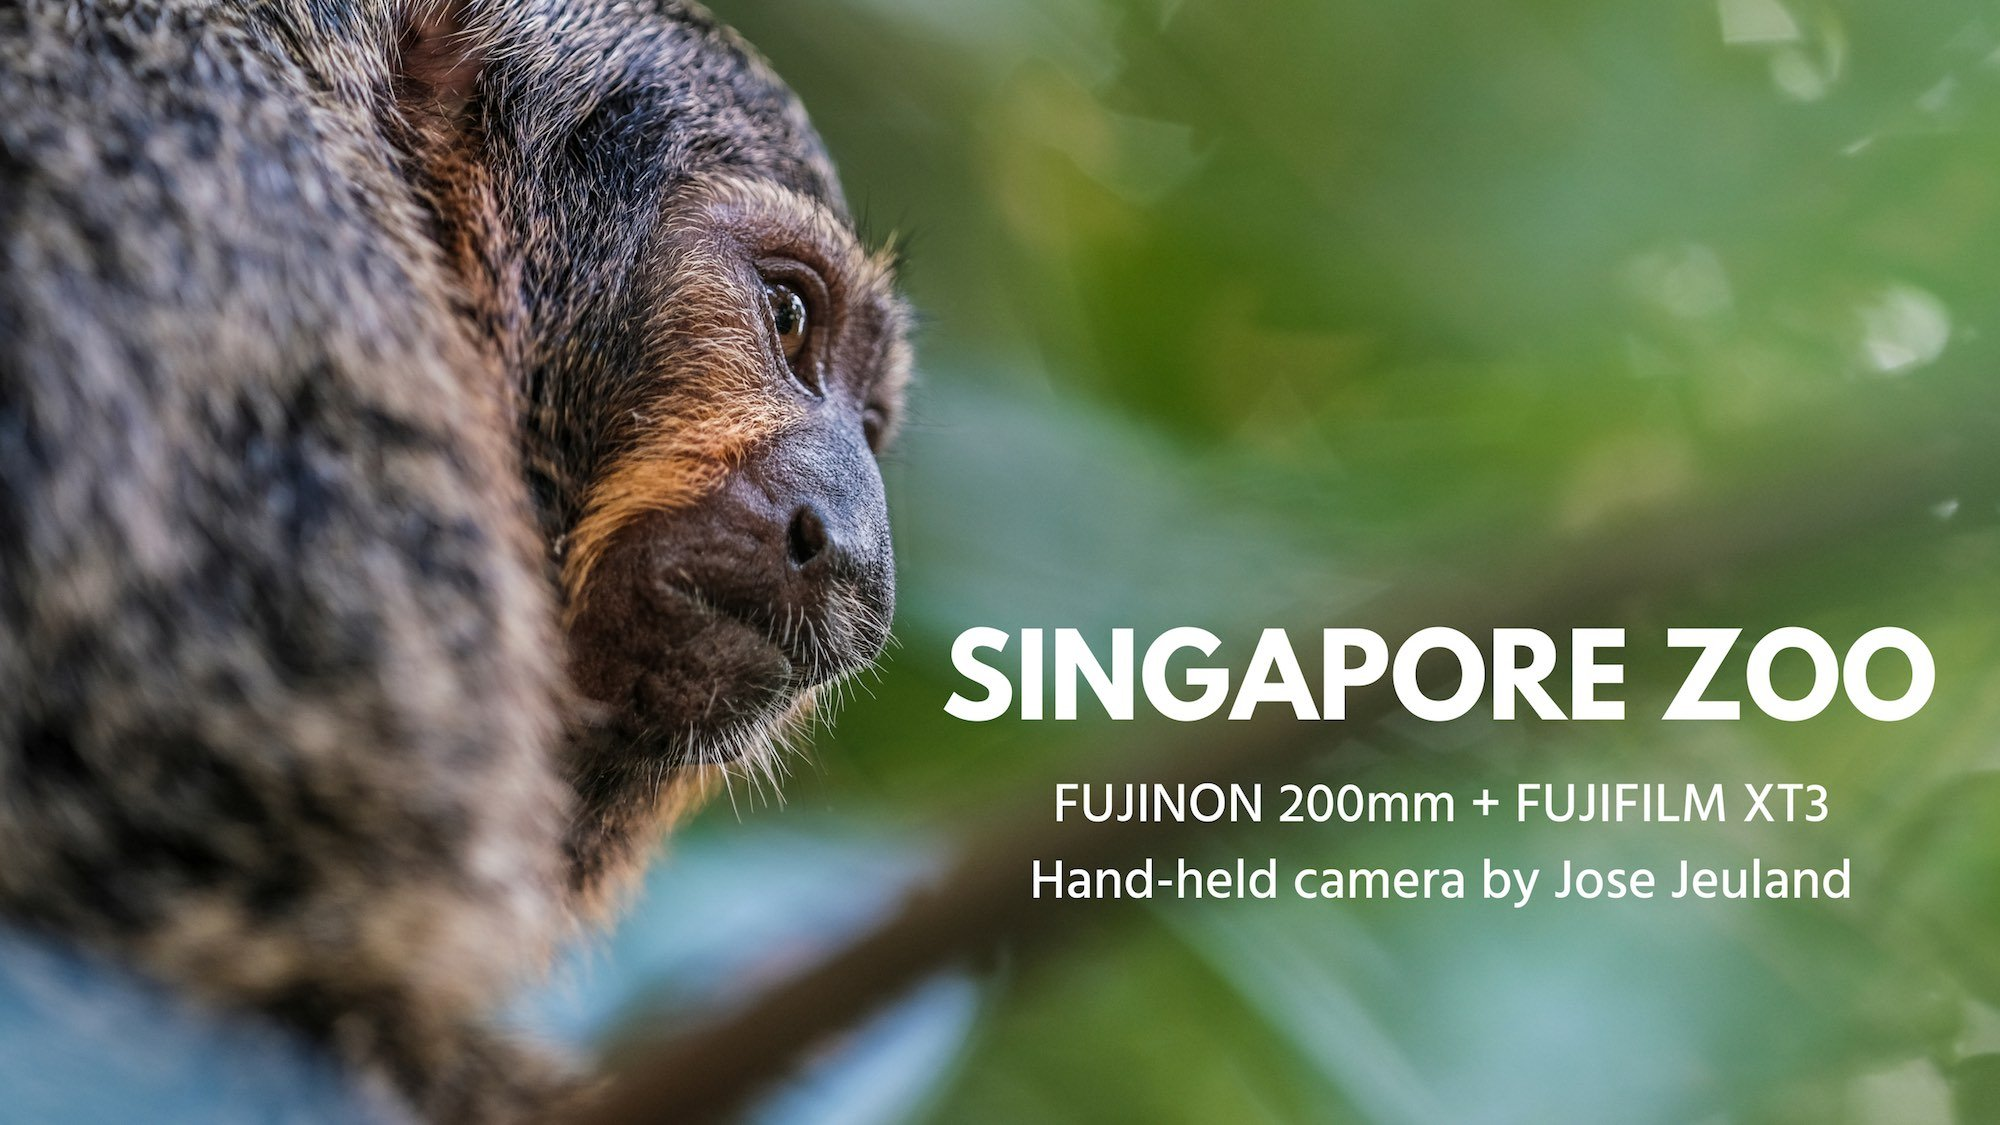 SINGAPORE ZOO Video FUJIFILM X-T3 FUJINON 200mm Monkey